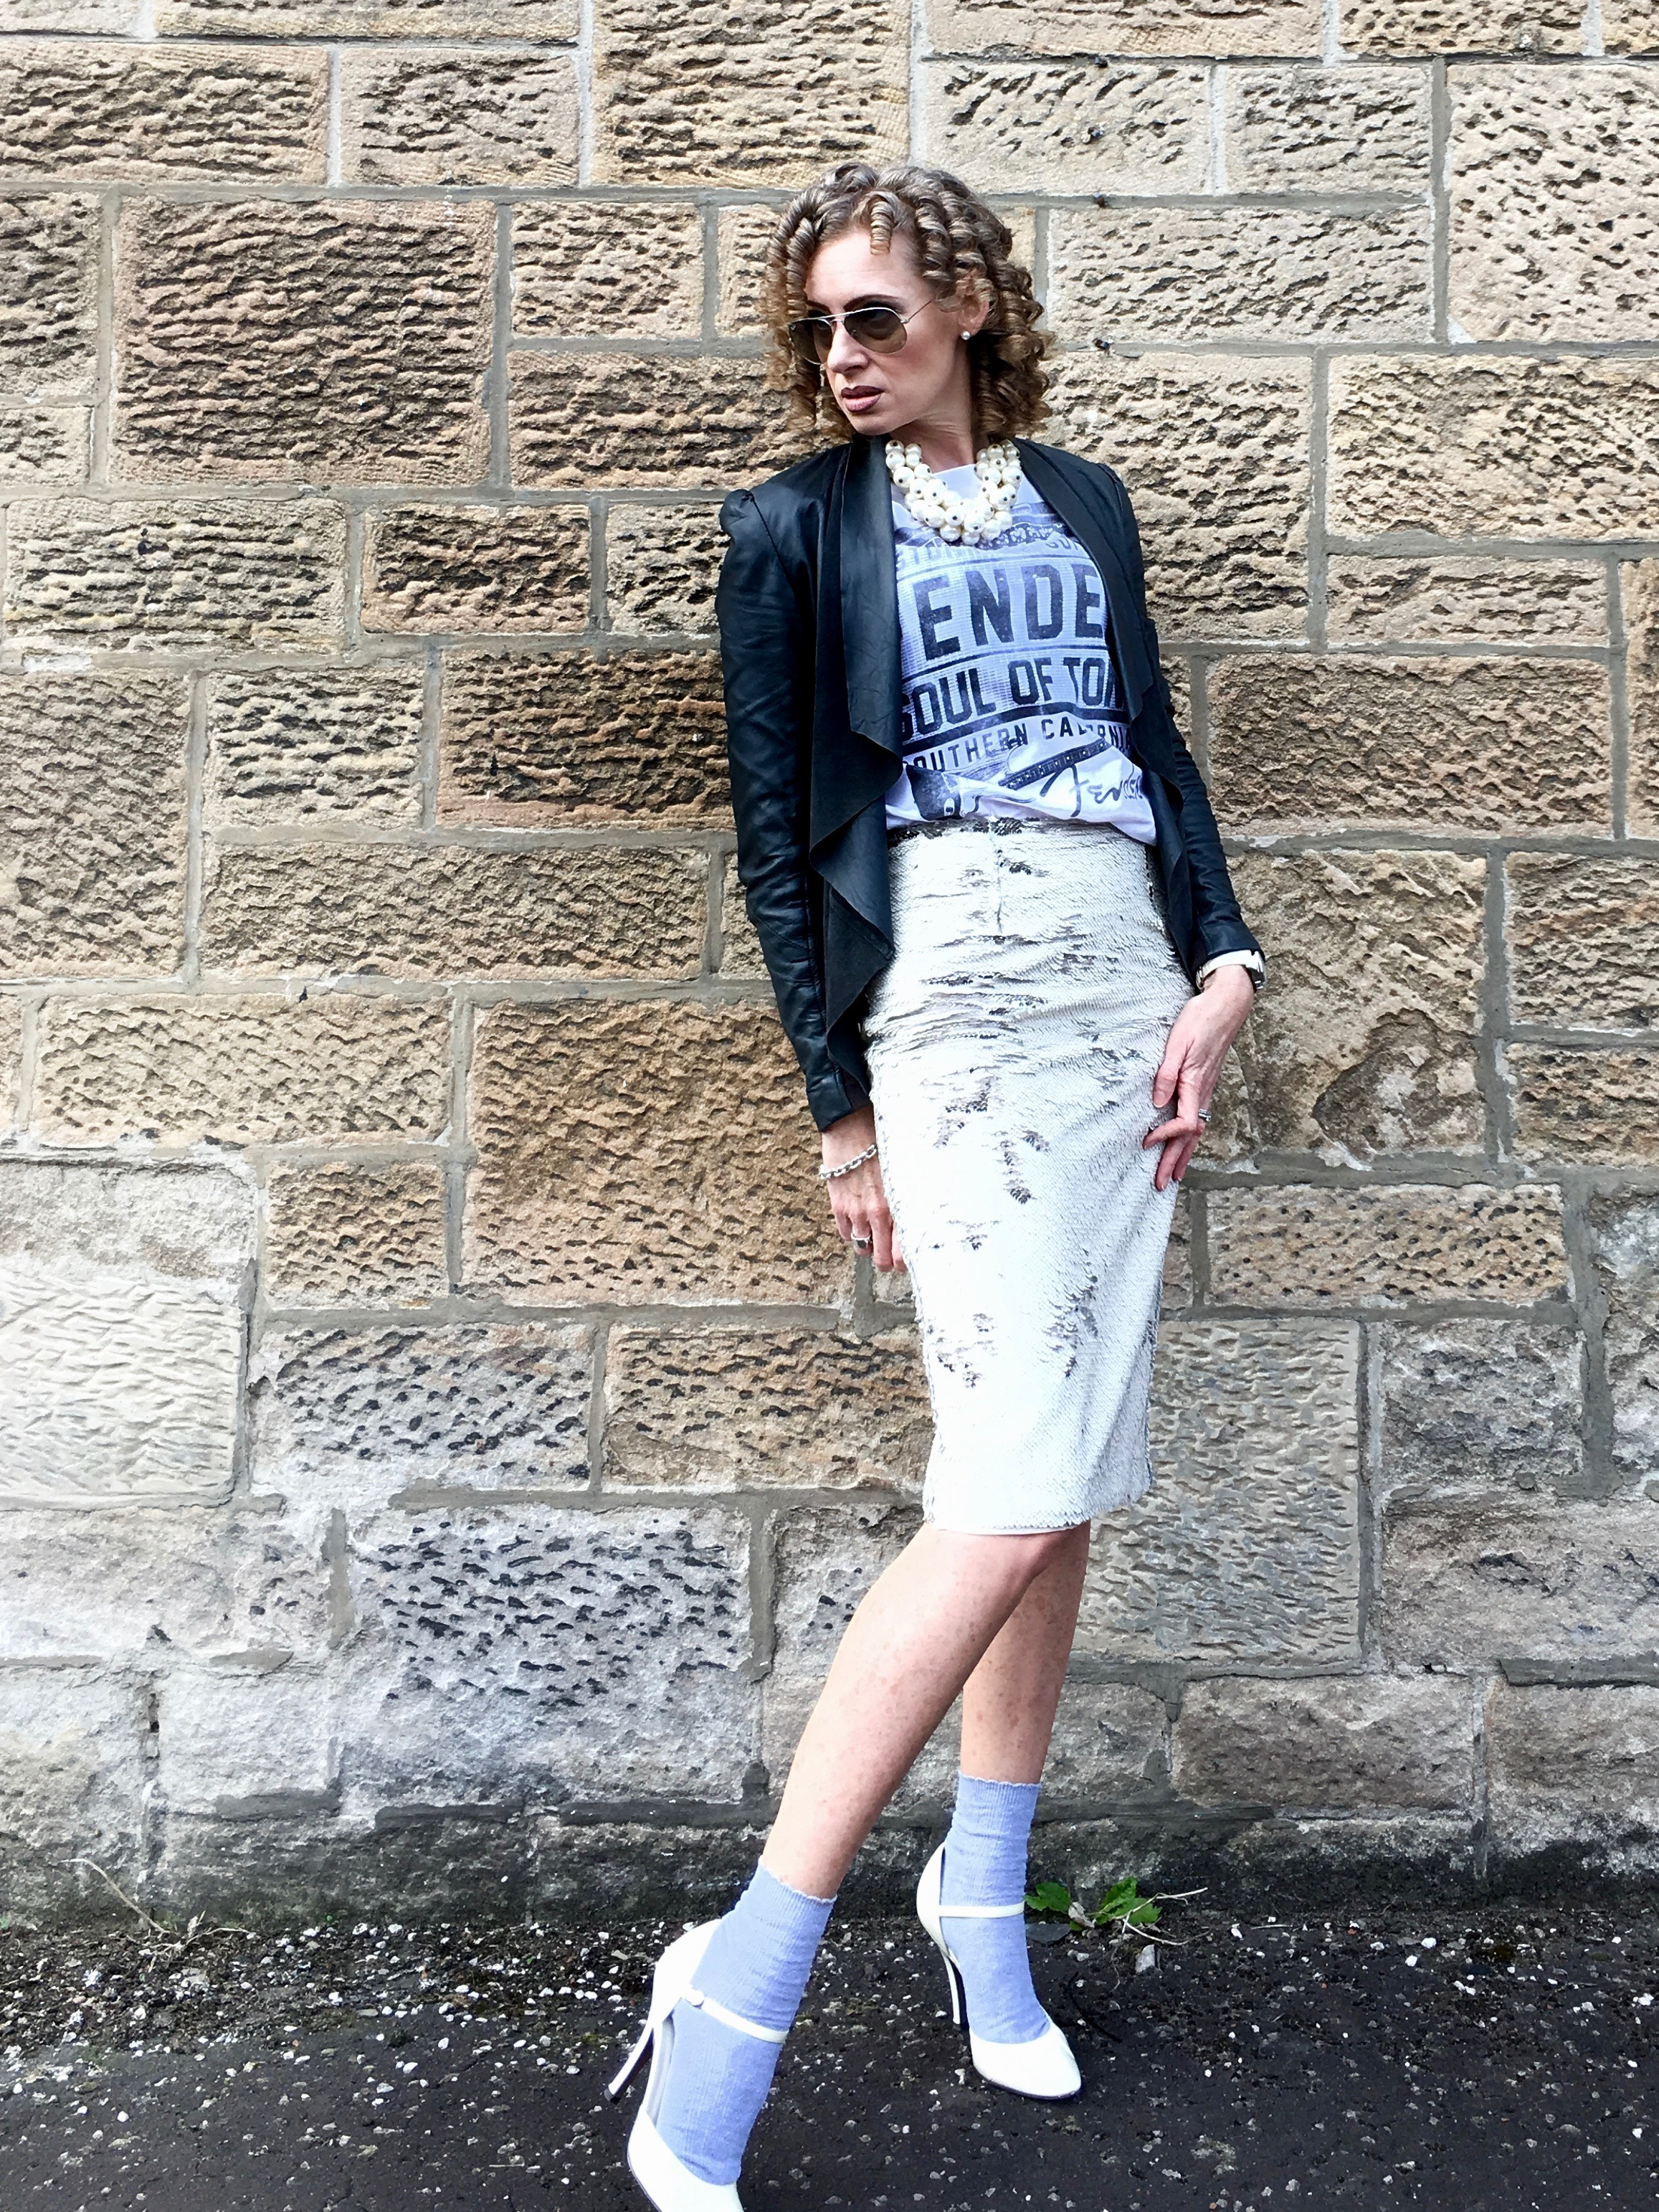 Weekend warrior: a sequinned skirt paired with band tee and leather jacket creates an interesting spin on weekend wear - ankle socks optional!